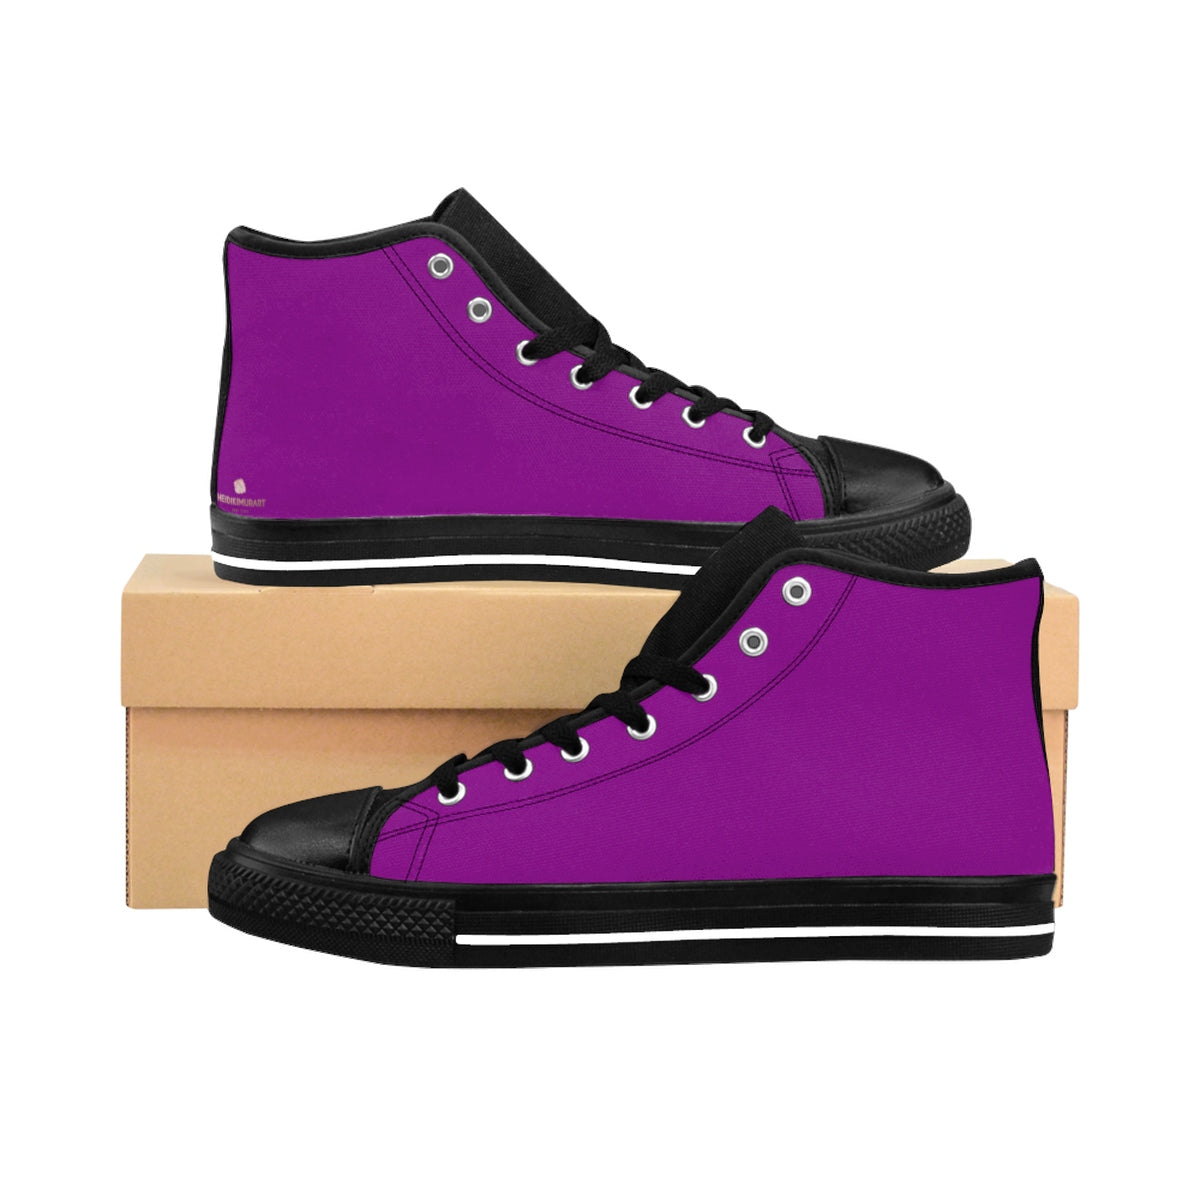 Imperial Purple Queen Solid Color Women's High Top Sneakers Running Shoes-Women's High Top Sneakers-US 9-Heidi Kimura Art LLC Purple Women's Running Shoes, Imperial Purple Queen Solid Color Women's High Top Sneakers Running Shoes (US Size: 6-12)